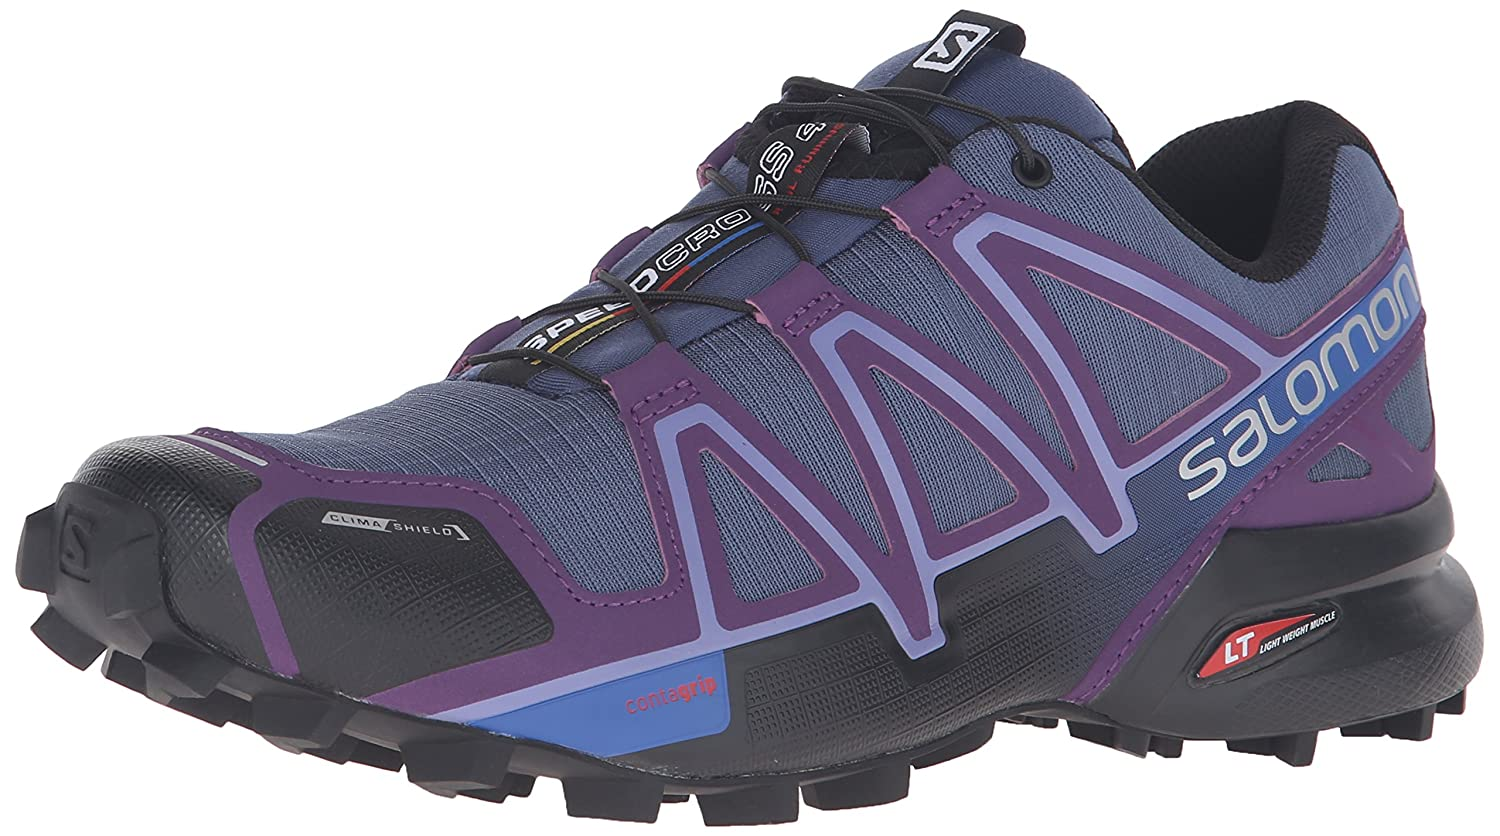 Salomon Women's Speedcross 4 CS W Trail Runner B017SQWMU4 12 B(M) US|Slate Blue/Cosmic Purple/Black